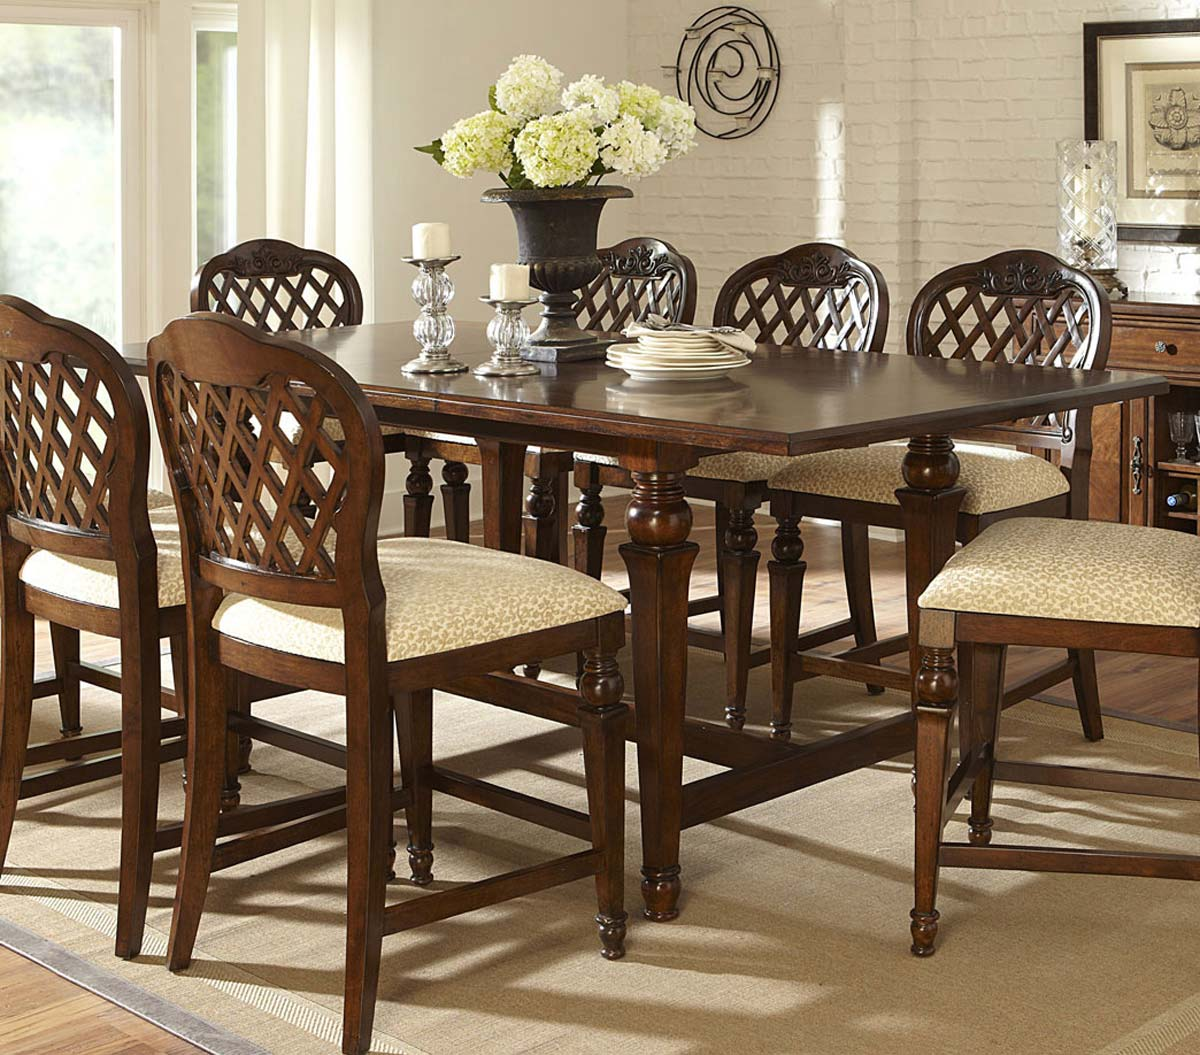 Counter Height Gathering Table With Storage : 4155DTBG Tabacon Counter Height Gathering Table With Wine Storage ...